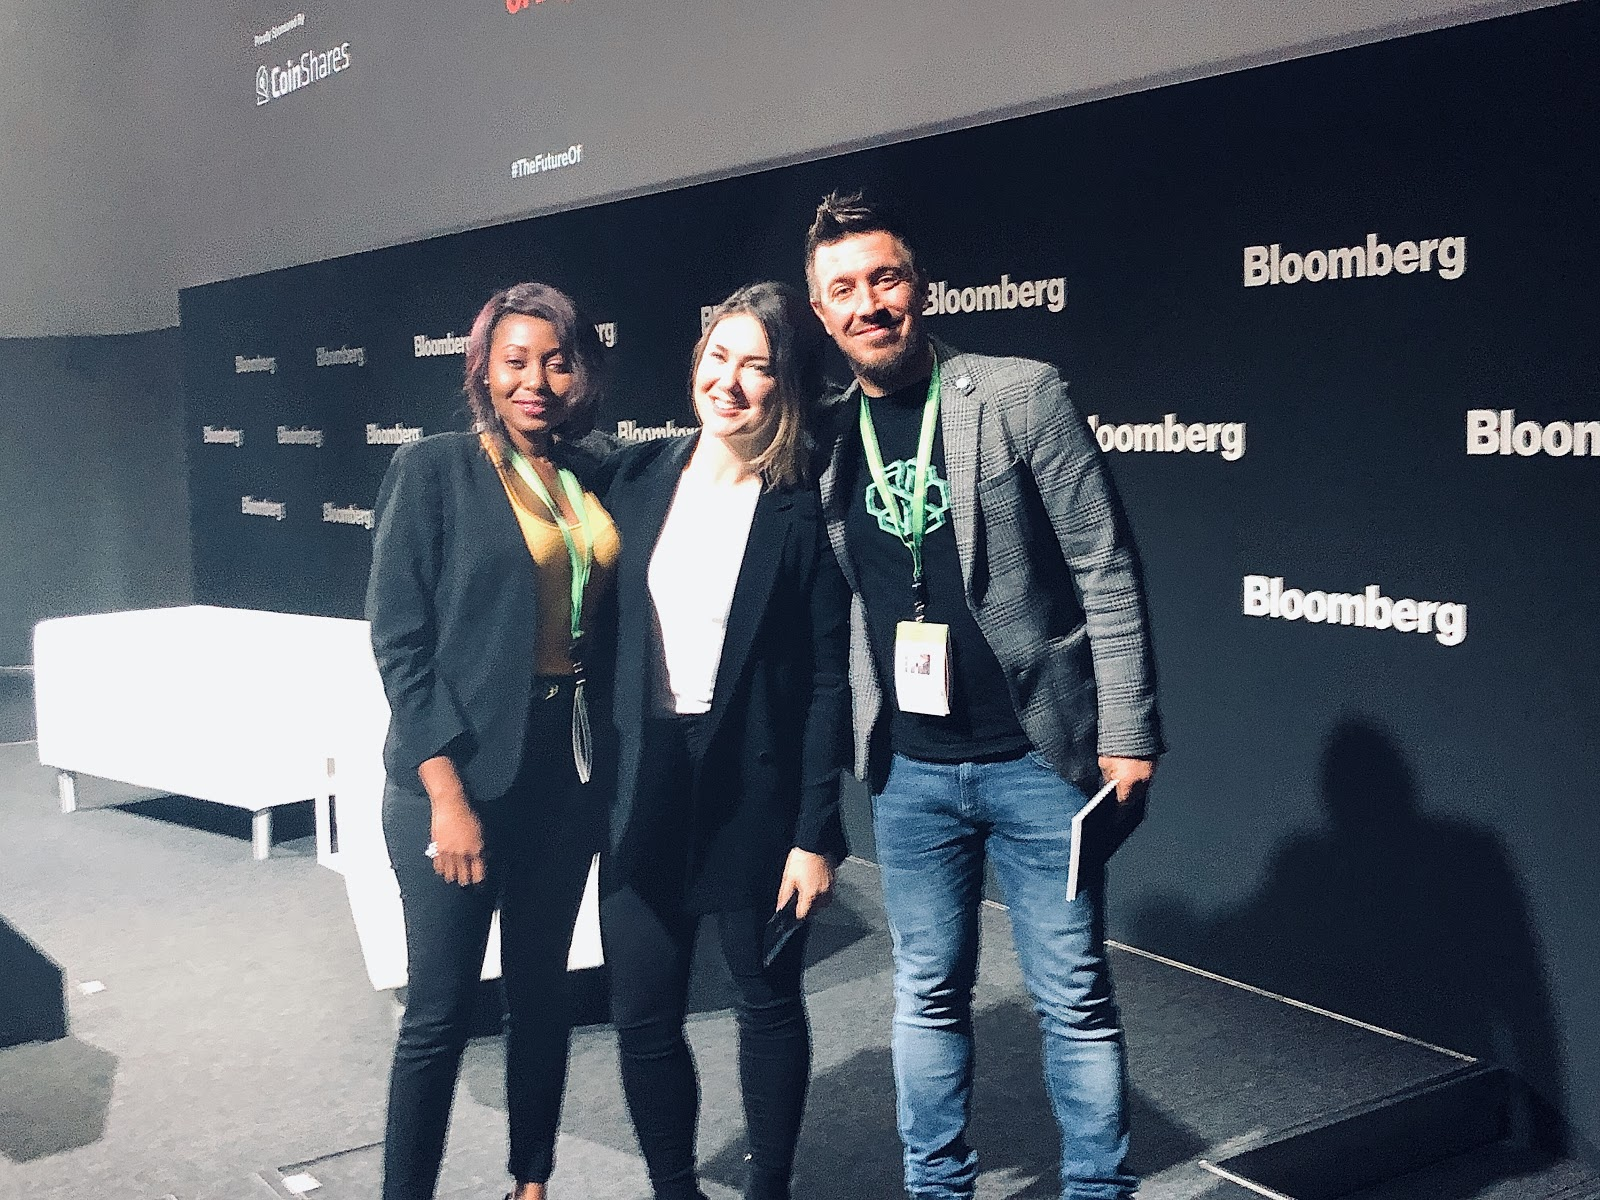 alex fazel at bloomberg offices